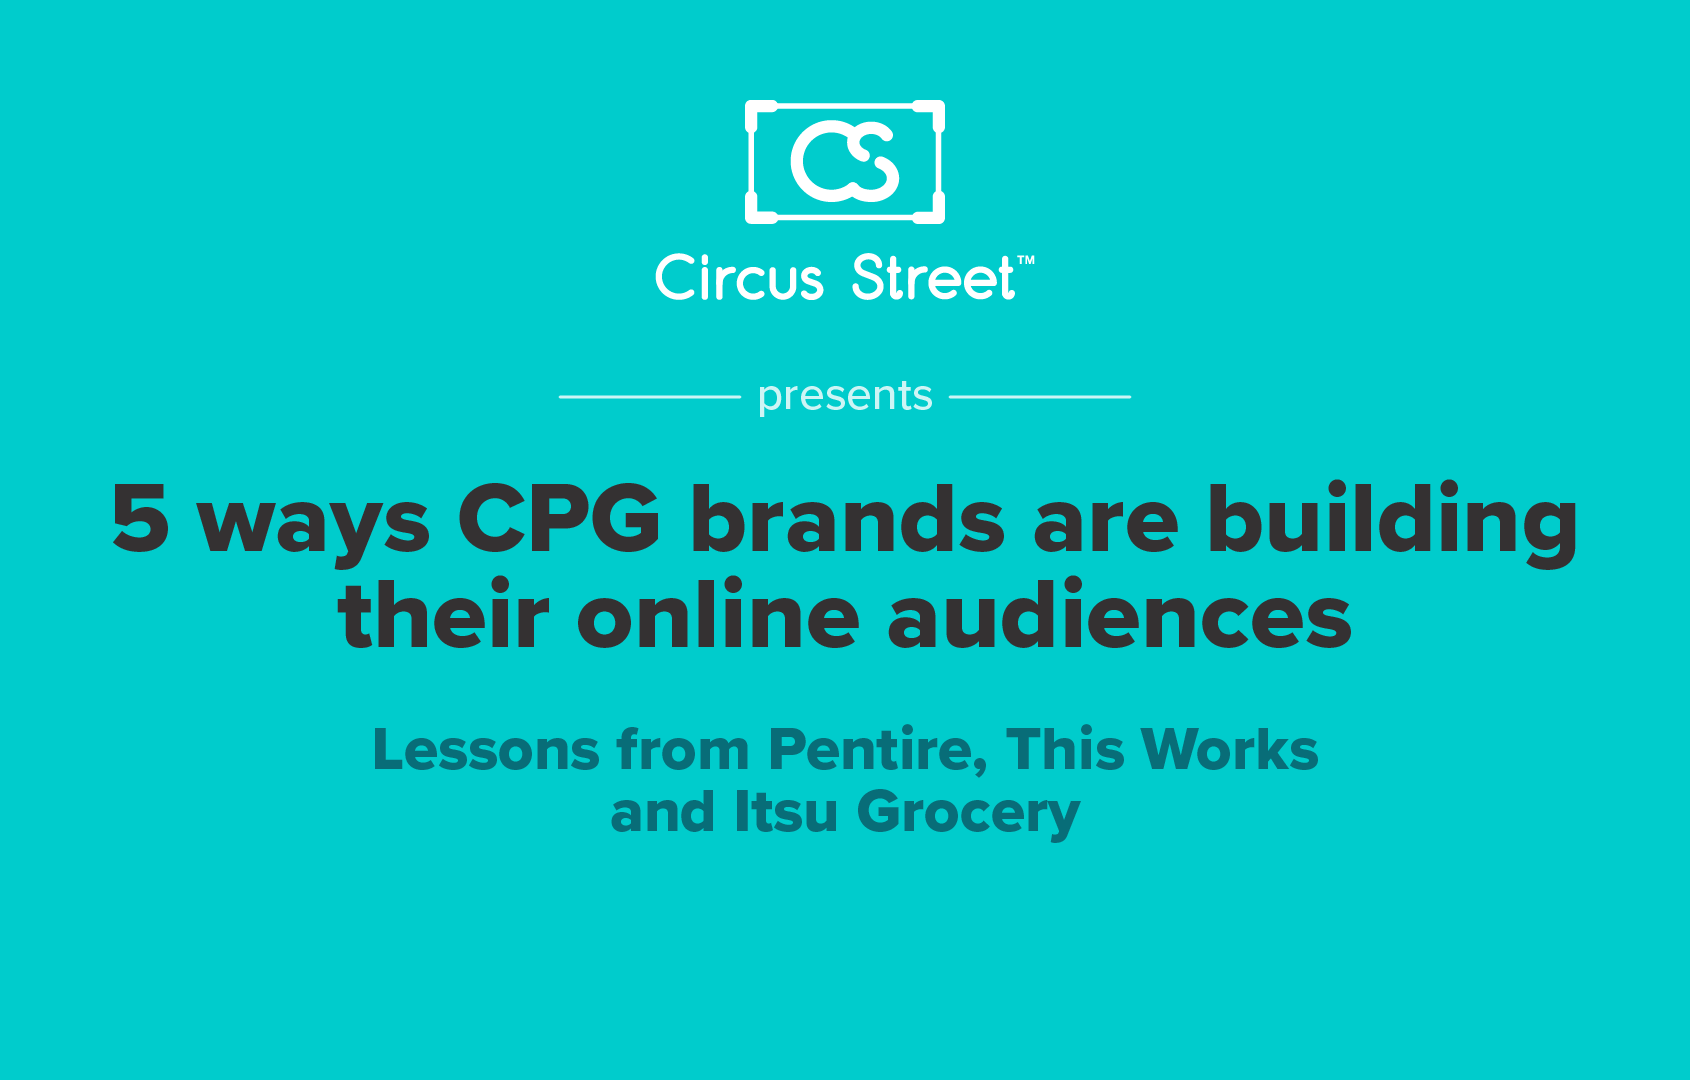 5 Ways CPG Brands are Building their Online Audiences